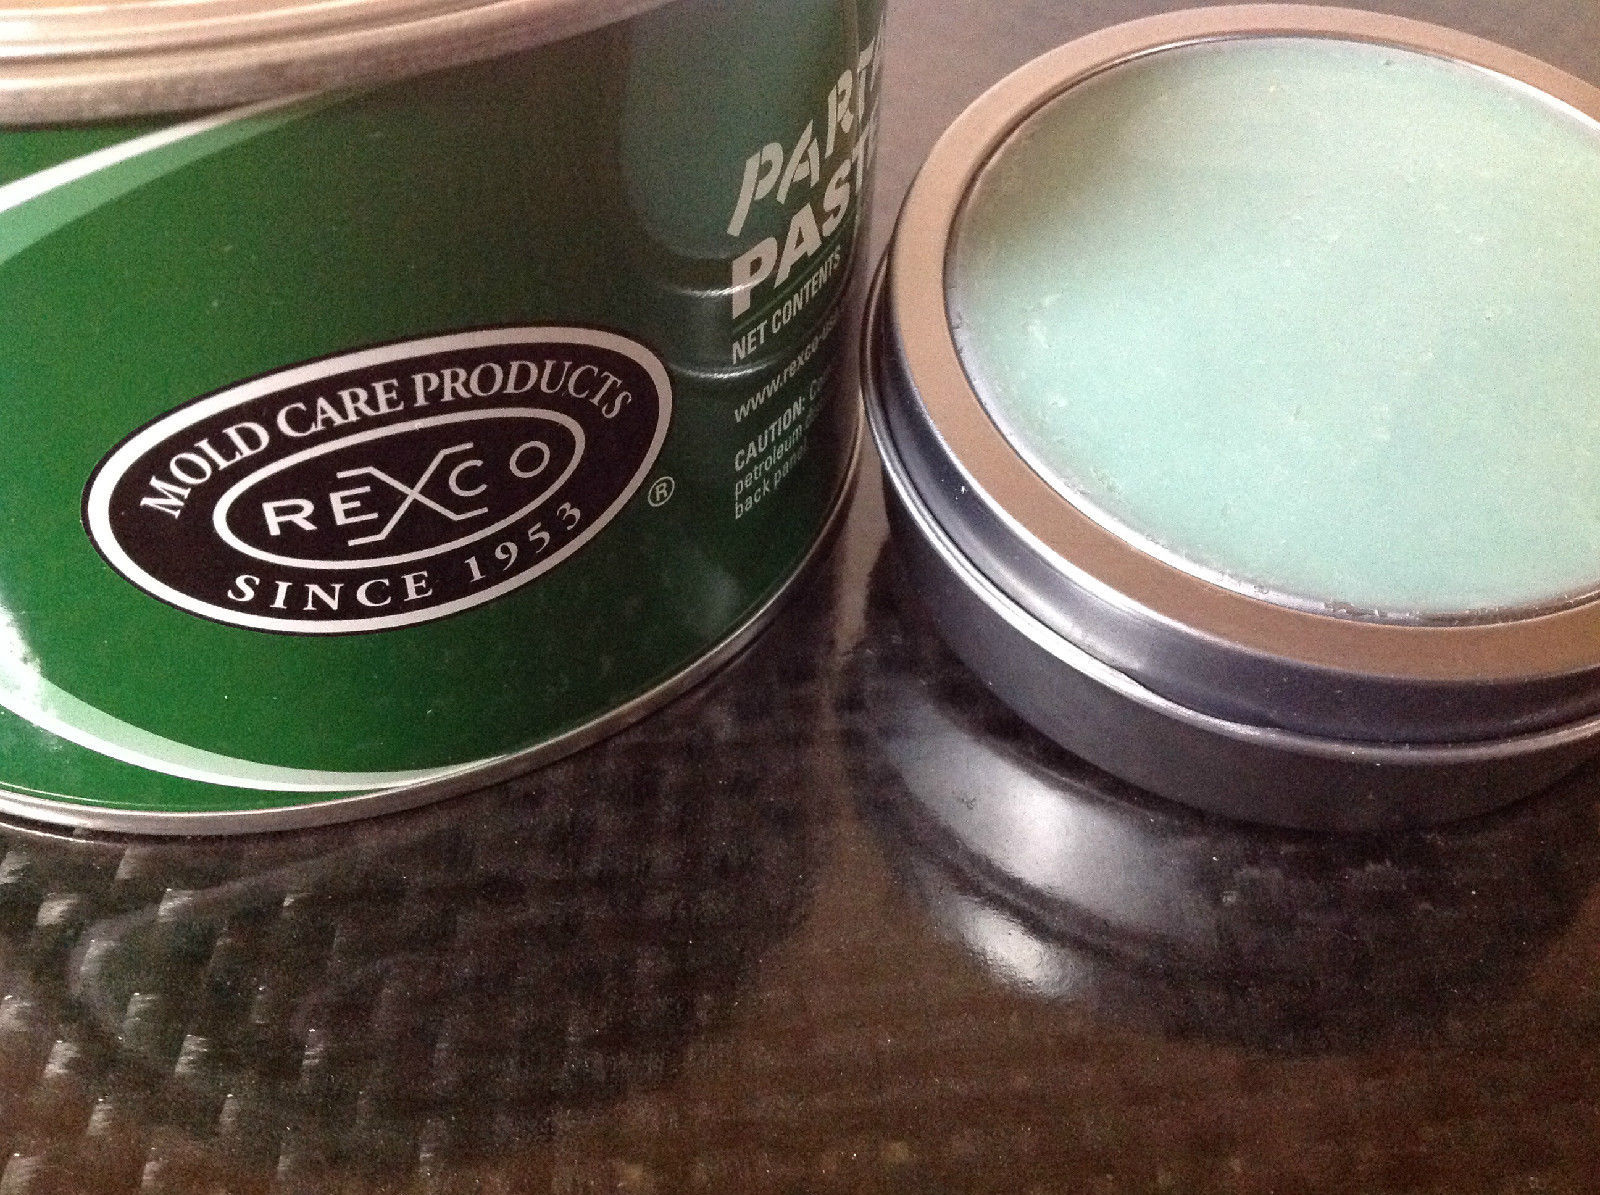 Mold Release Partall Paste Wax REXCO and 50 similar items